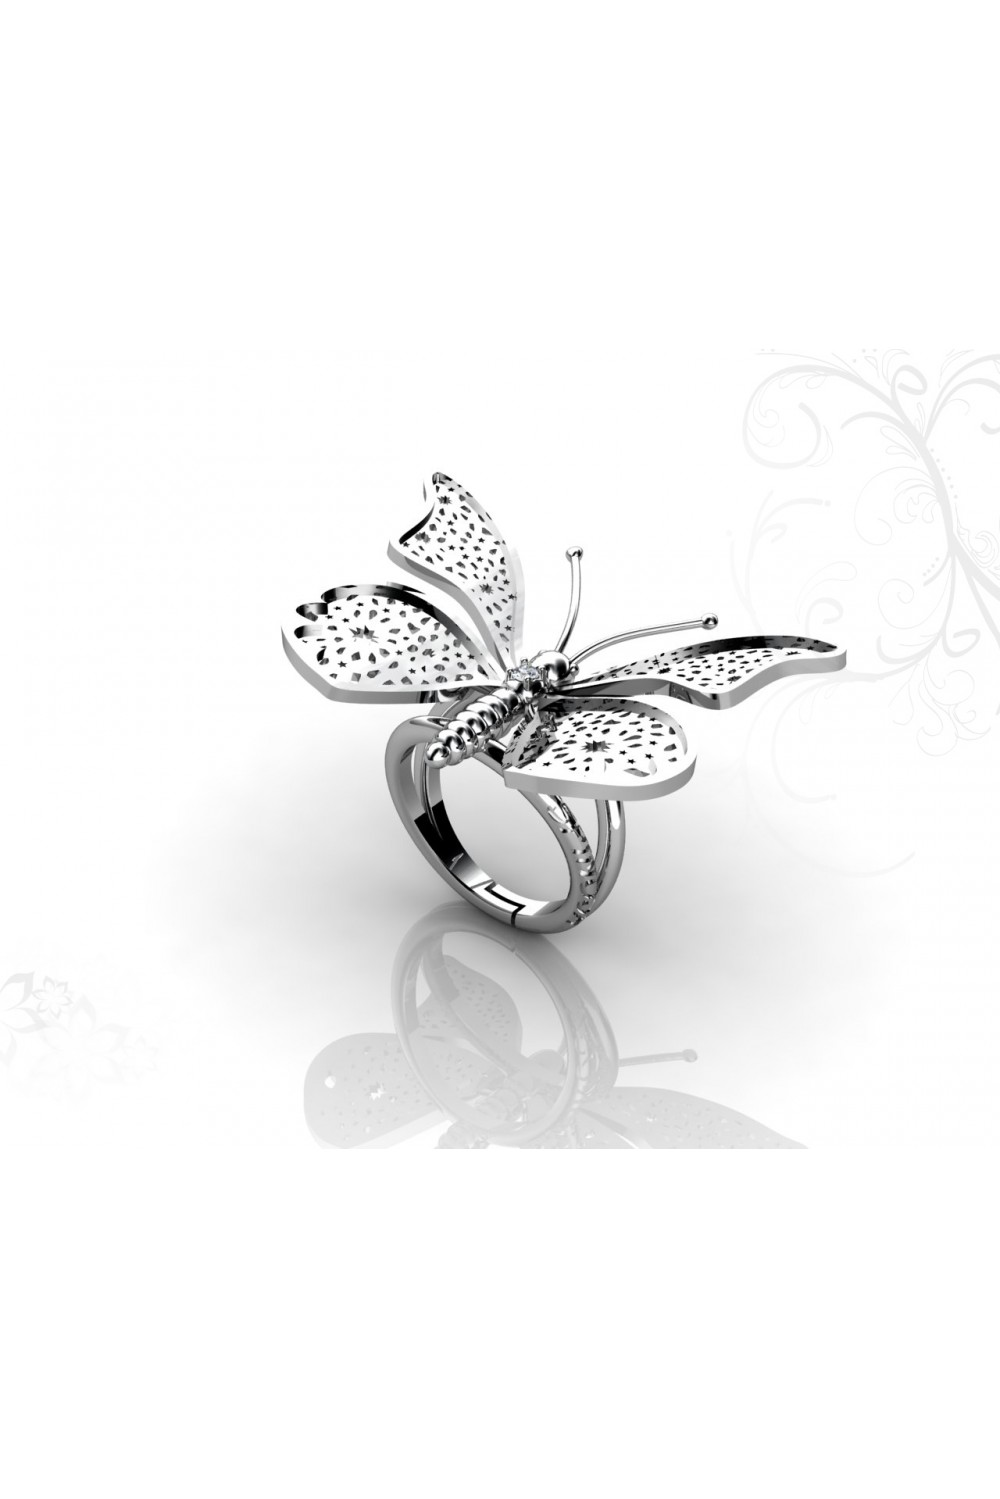 mariahs ring rings celebrity eve inspired s cz butterfly addiction